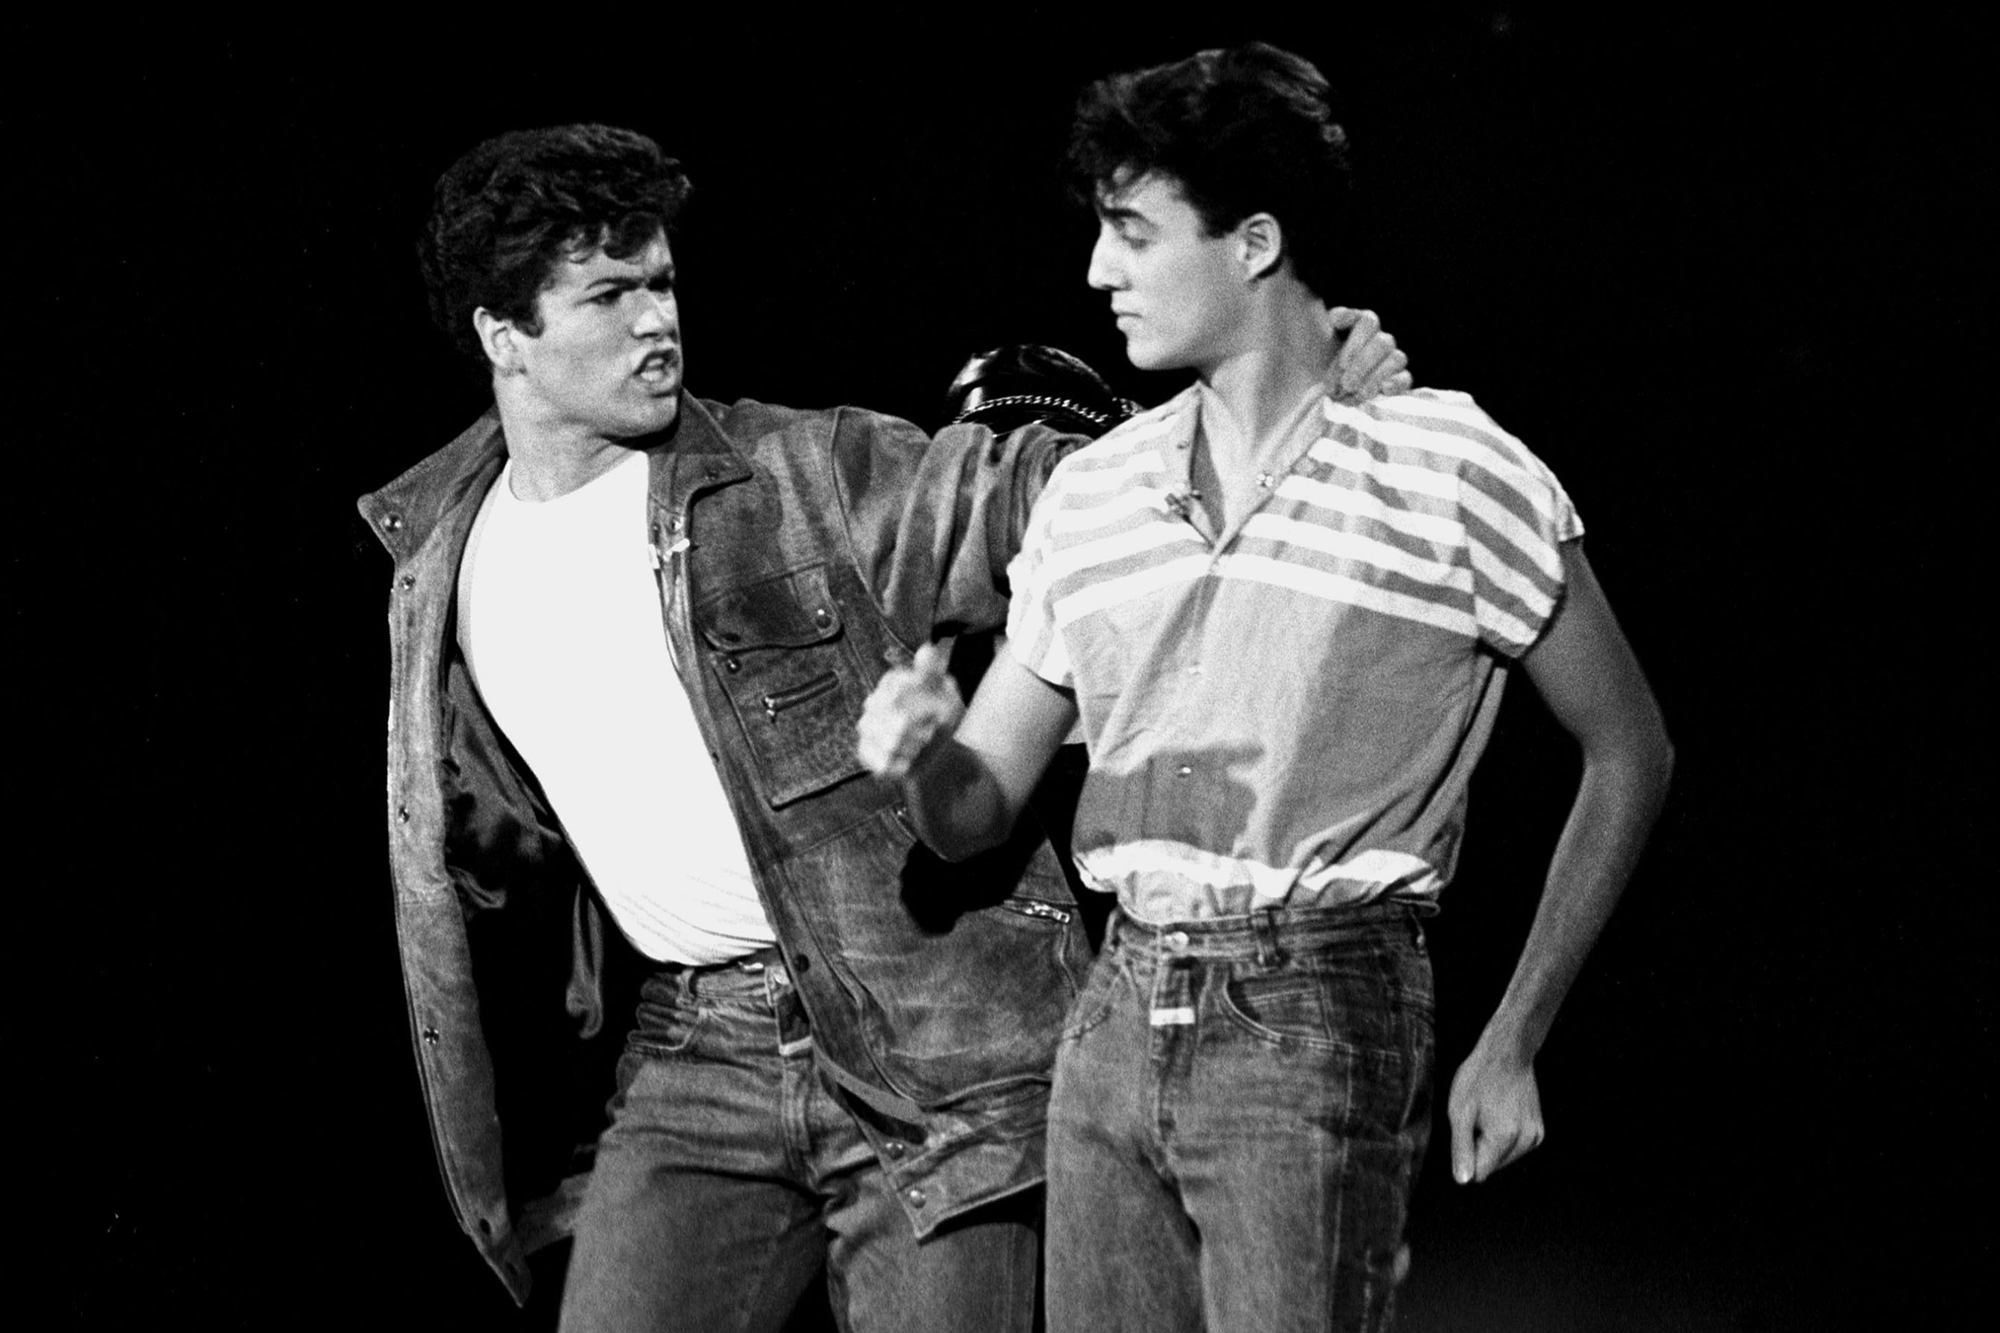 George Michael and Andrew Ridgeley of Wham! perform on Solid Gold during their first American television appearance, on Nov. 12, 1982.